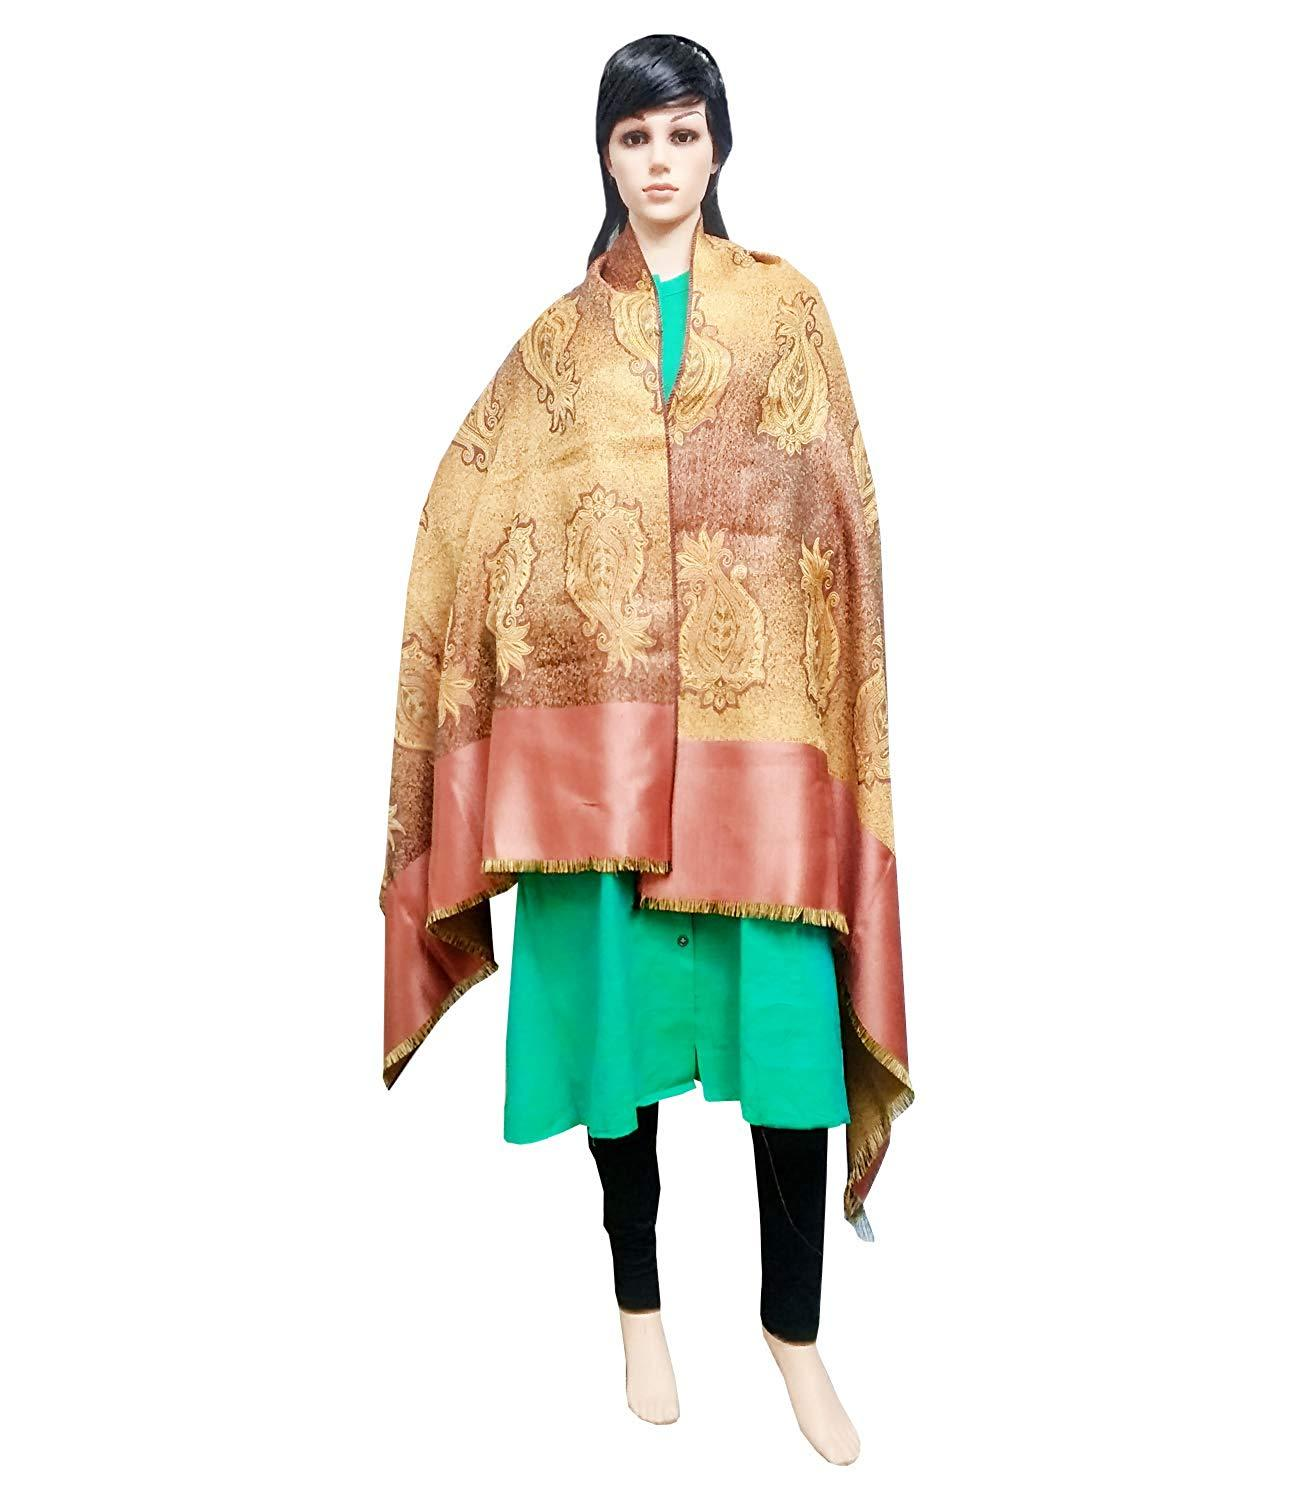 Viscose Kashmiri Shawl Jacquard Designs Warm and Soft (76 x 39 inches) - Bagaholics Gift